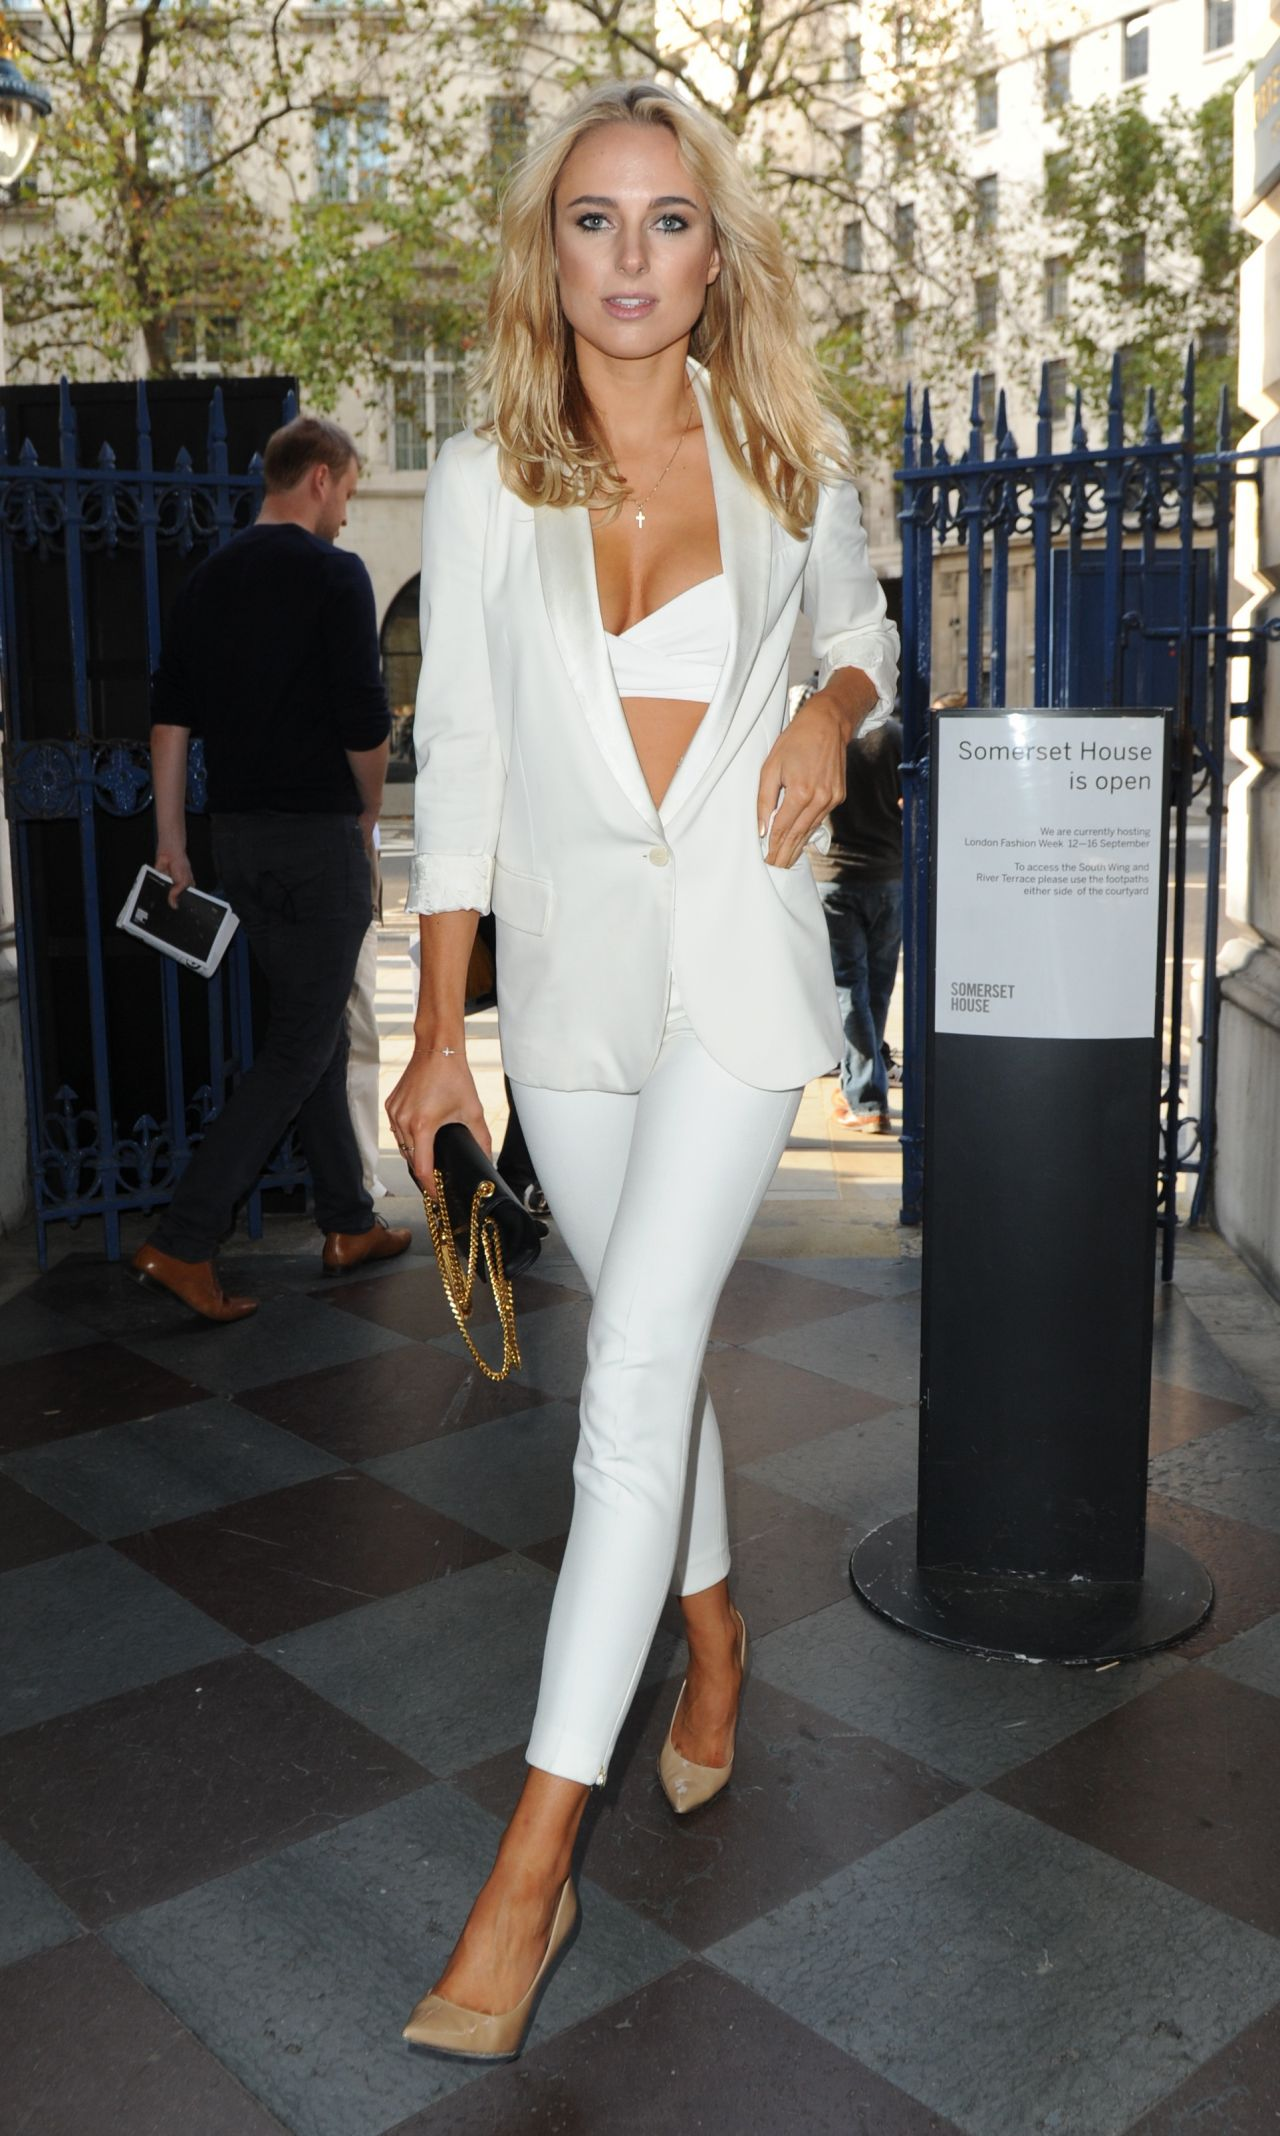 Kimberley Garner At Somerset House For London Fashion Week September 2014